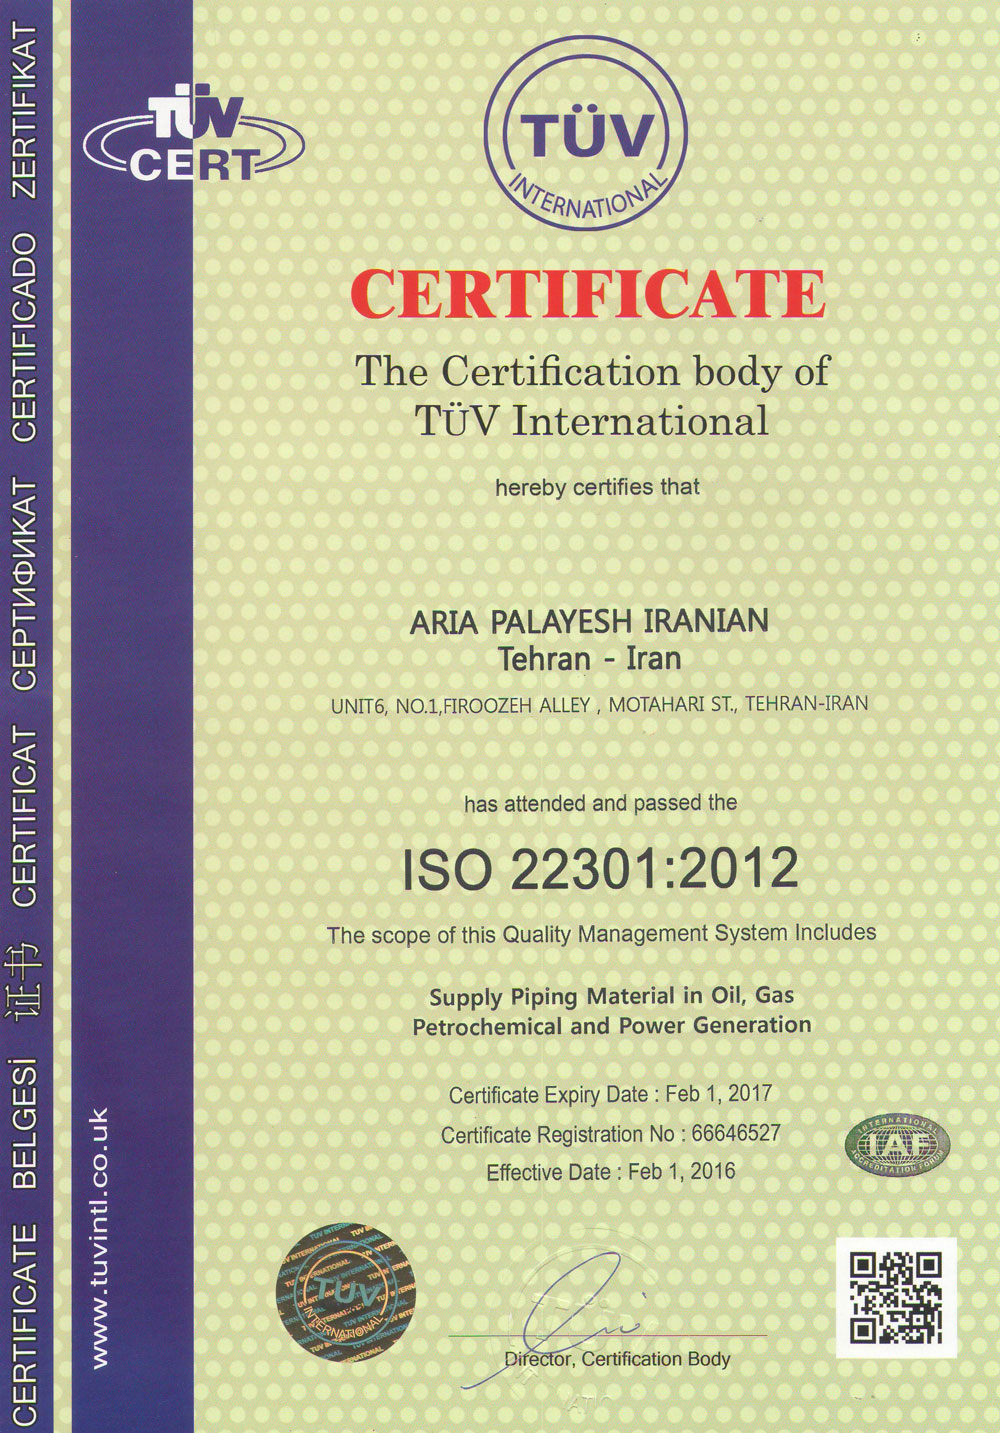 ISO 22301: 2012 Certificate